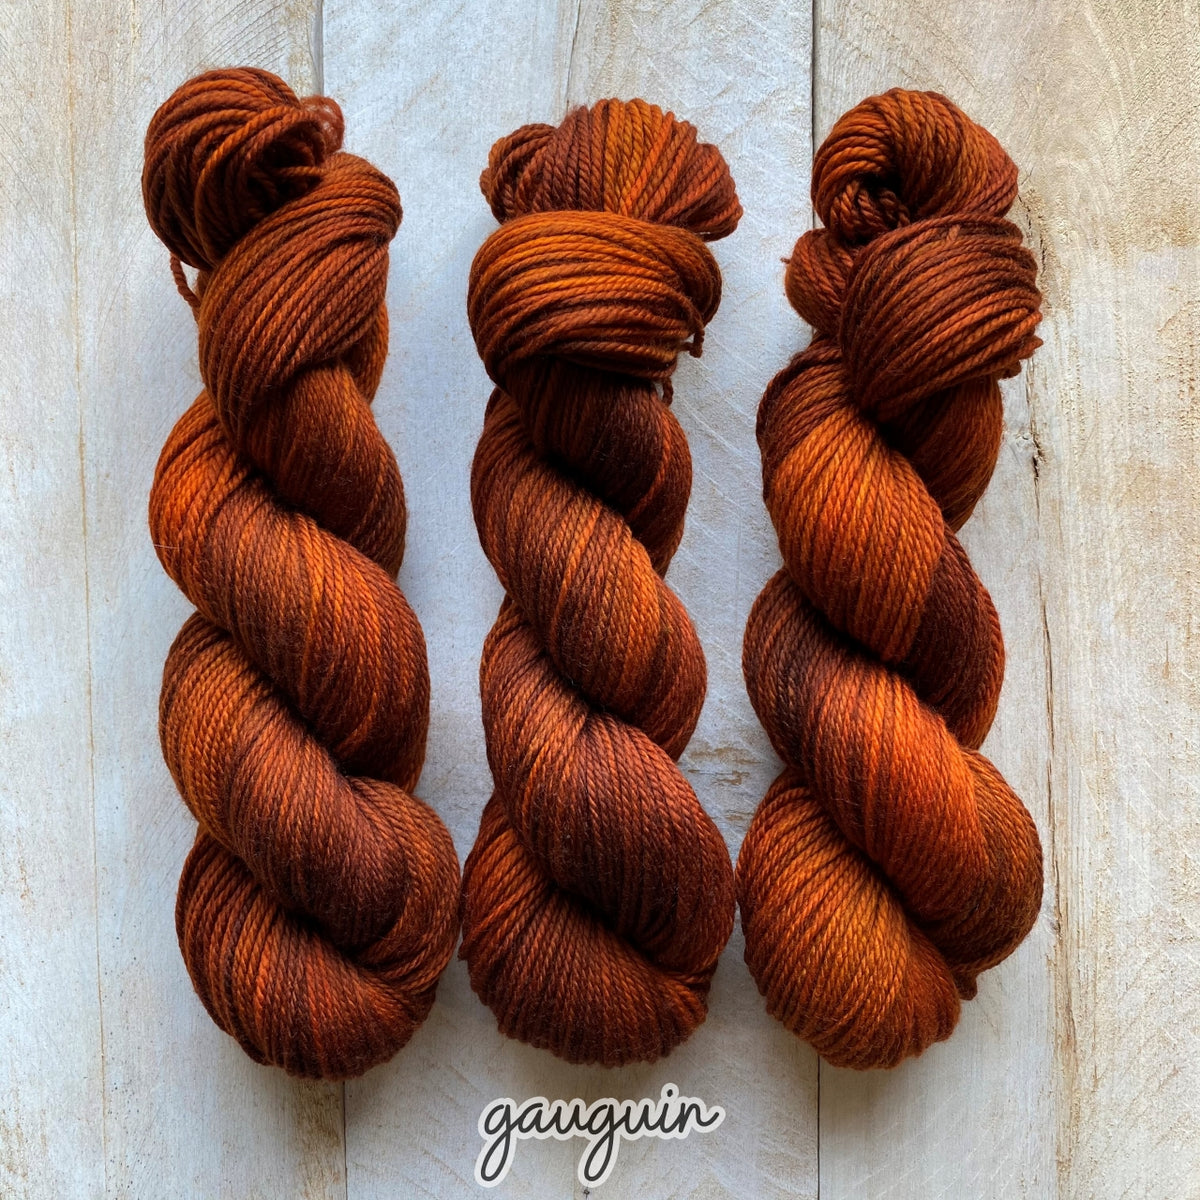 GAUGUIN by Louise Robert Design | MERINO WORSTED hand-dyed semi-solid yarn